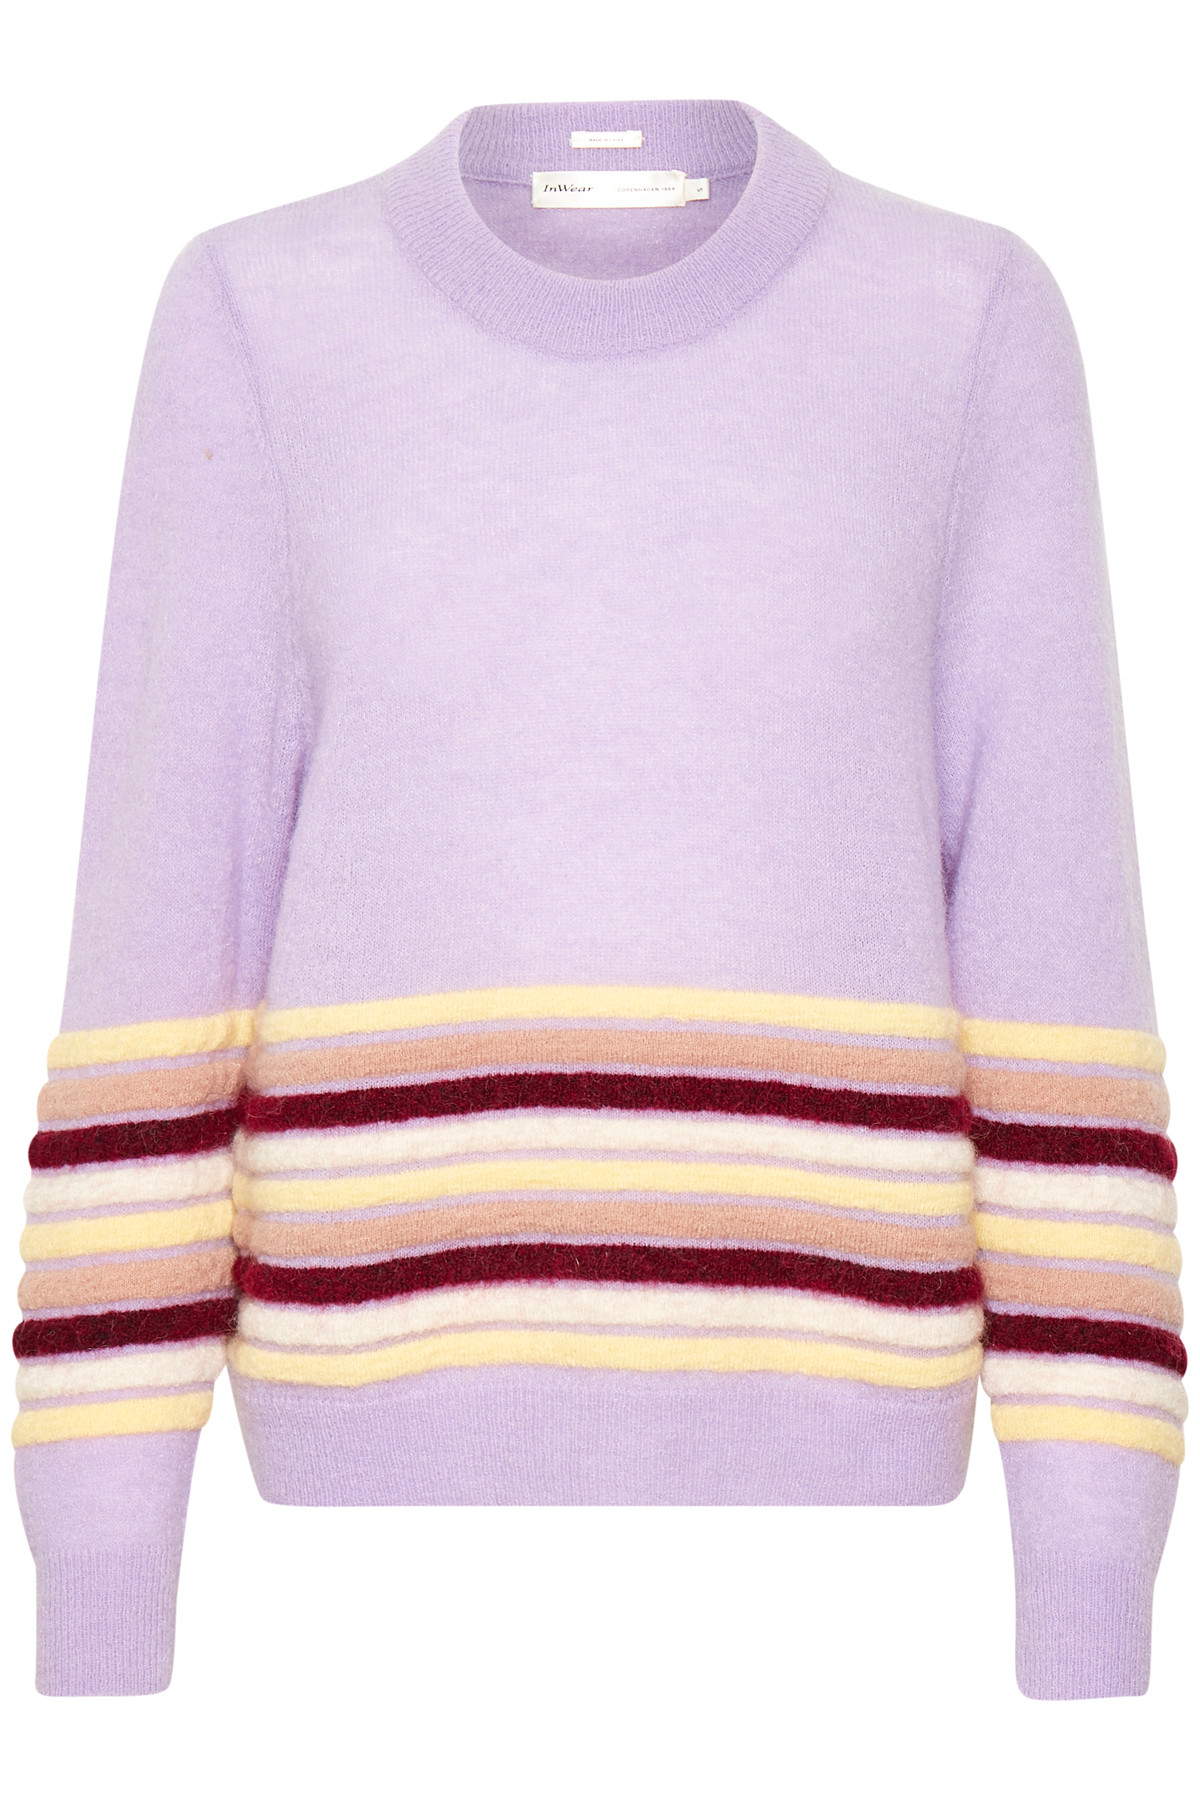 Image of   InWear NOREEN PULLOVER 30103990 (Purple Rose 10390, L)